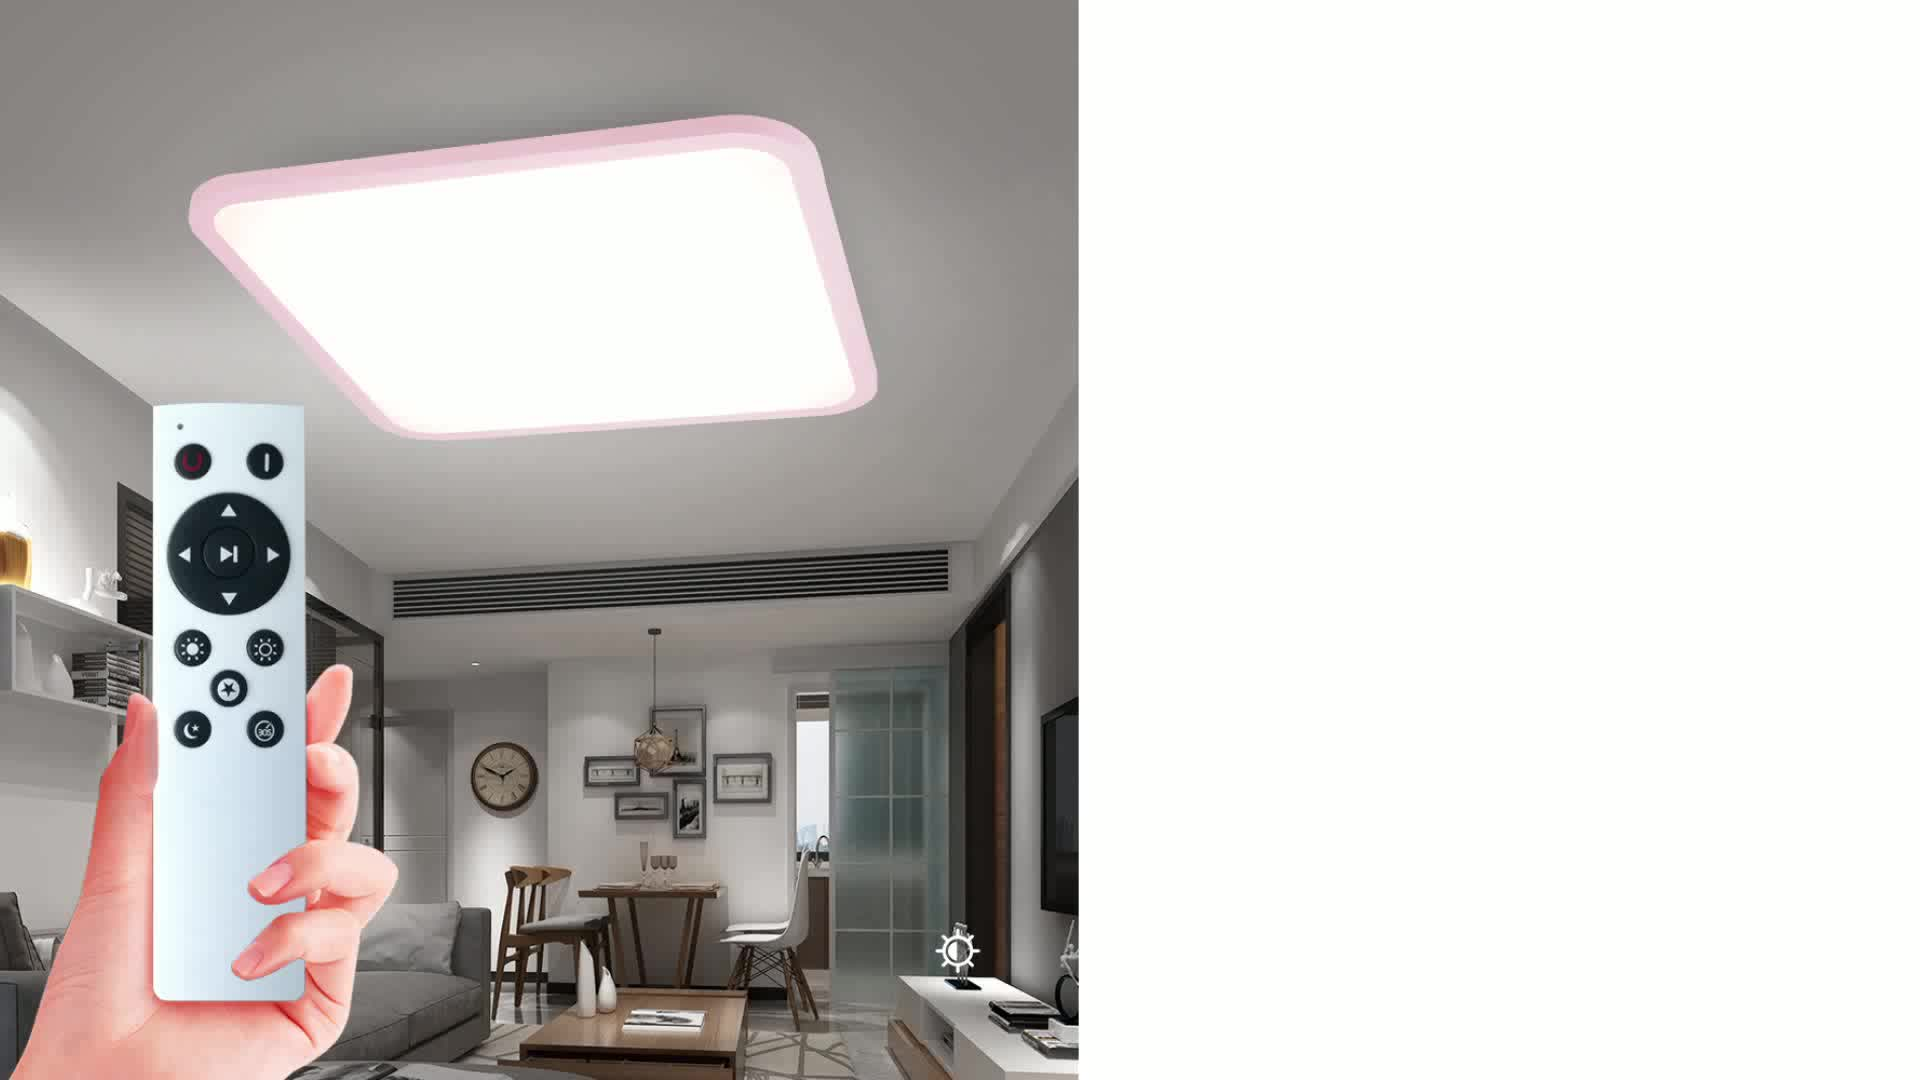 Ultra Thin Lamparas De Techo Customized Infrared Ceiling Light Vintage Residential European Panel Square Mirror LED Ceiling Lamp